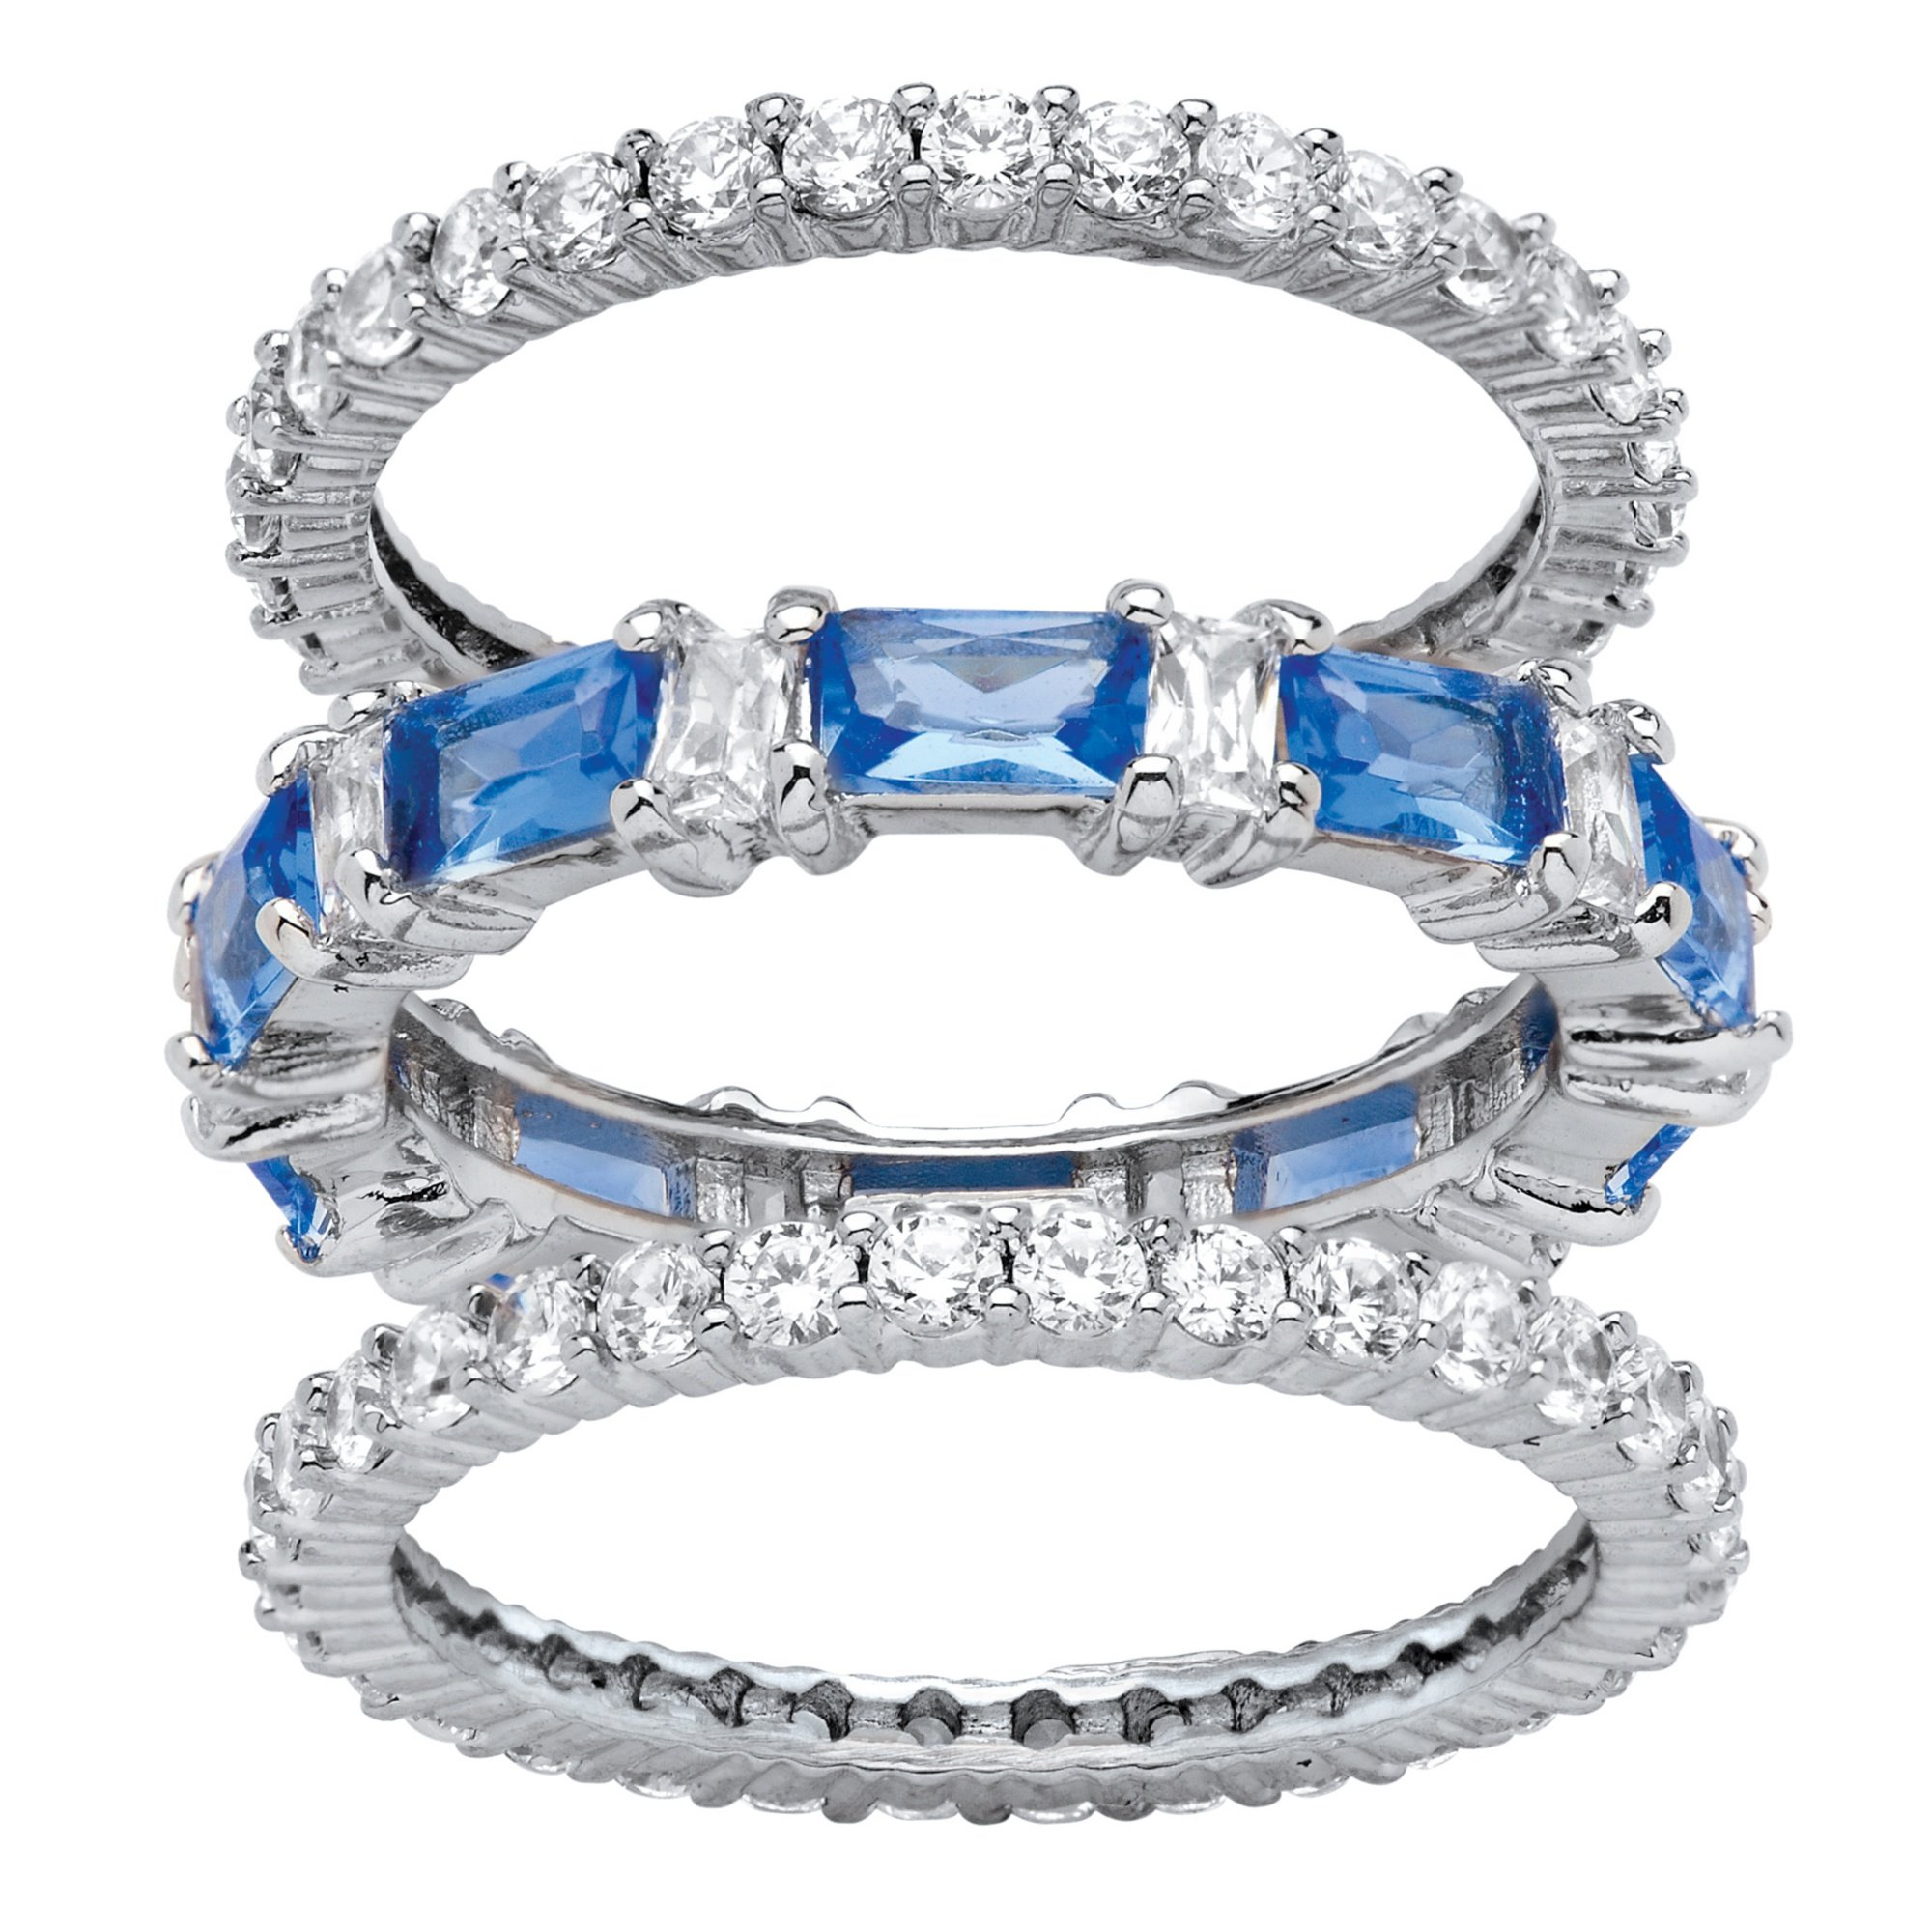 Palm Beach Jewelry White Cubic Zirconia and Blue Emerald-Cut Crystal Platinum-Plated 3-Piece Eternity Ring Set Size 9